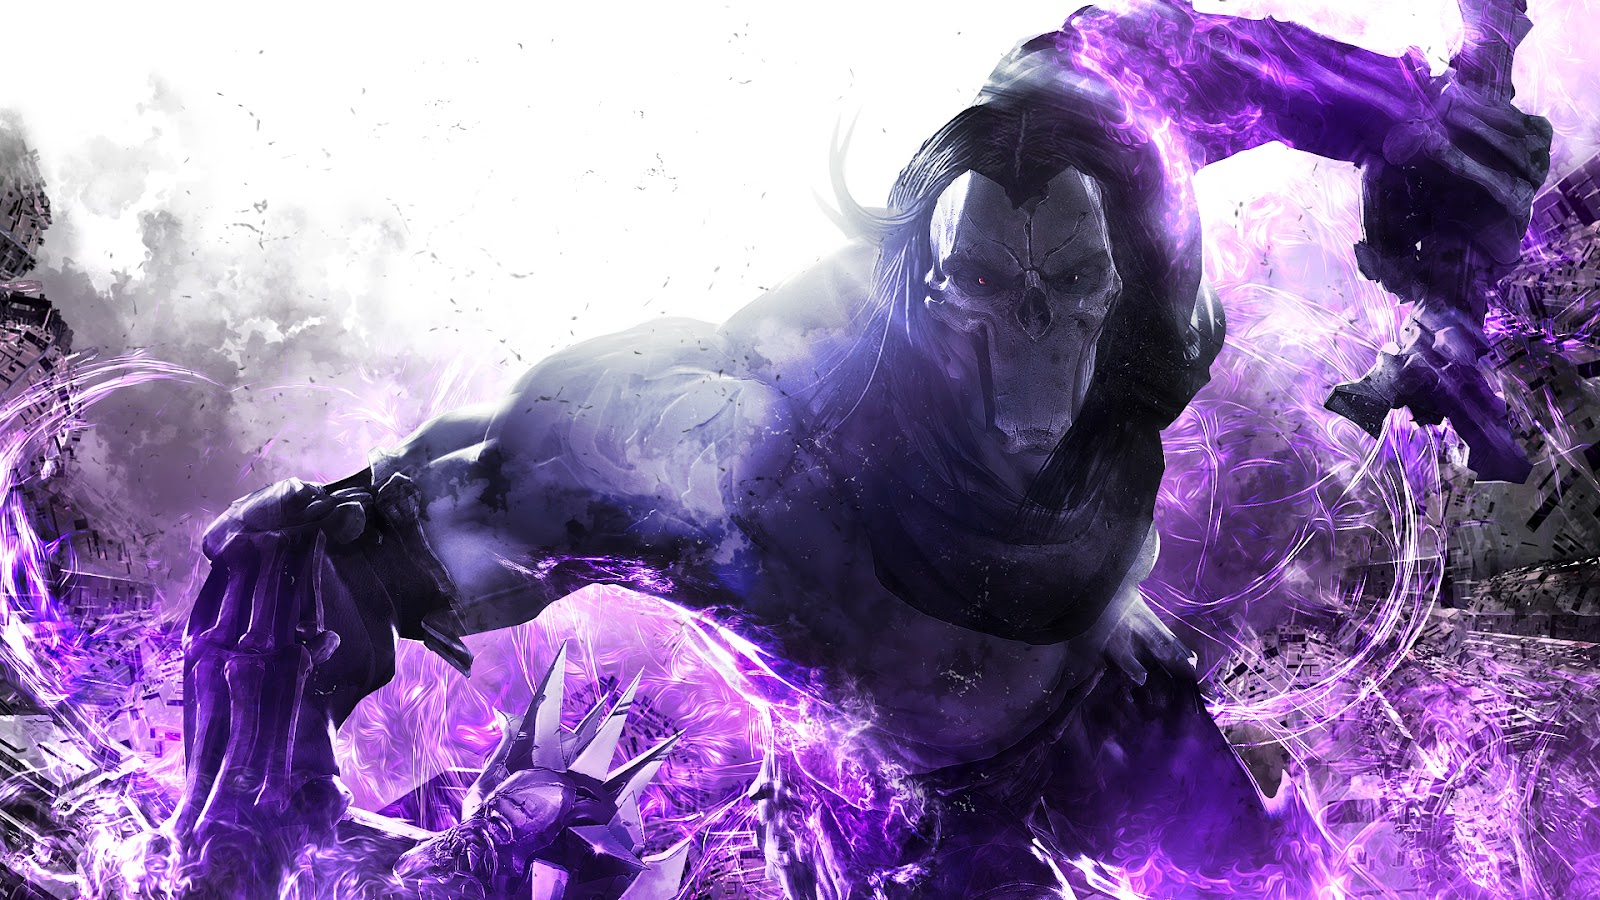 Darksiders 2 Wallpaper Hd